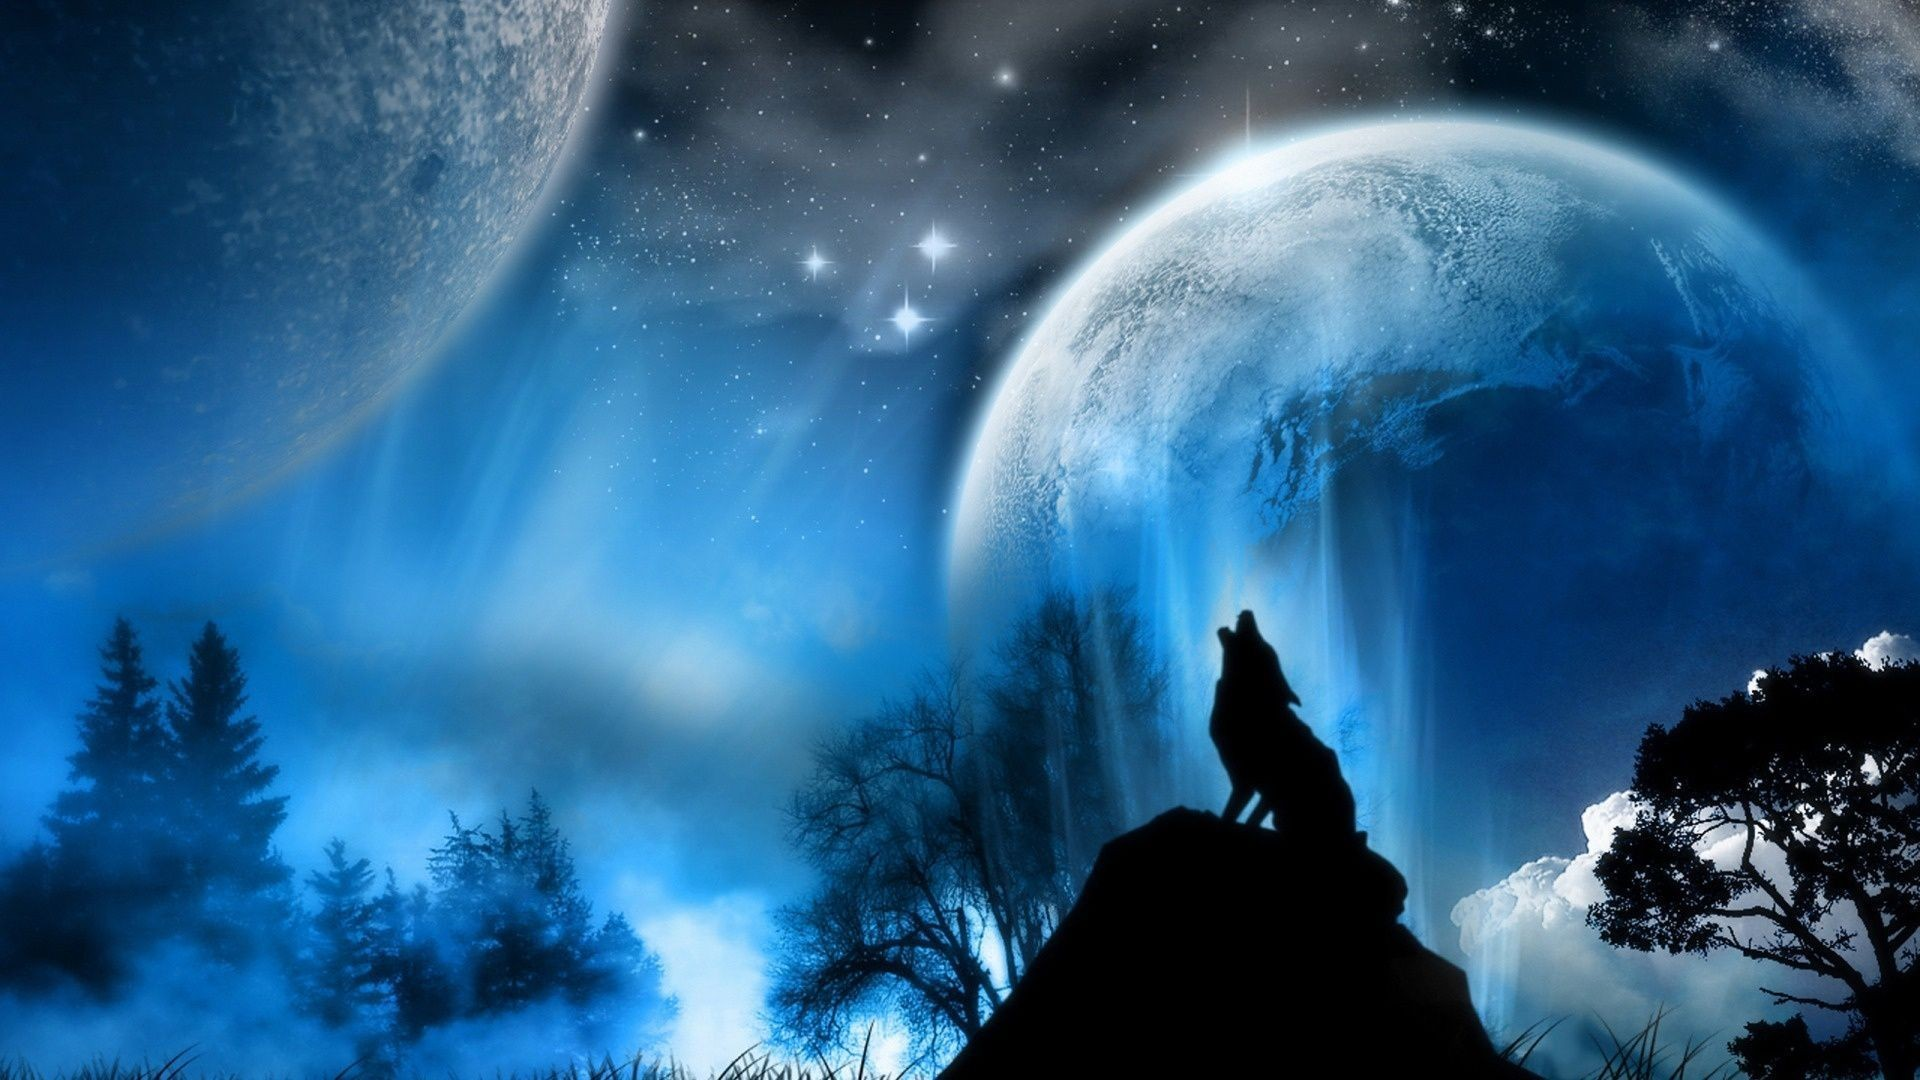 46+ wolf wallpapers ·① download free stunning hd wallpapers for